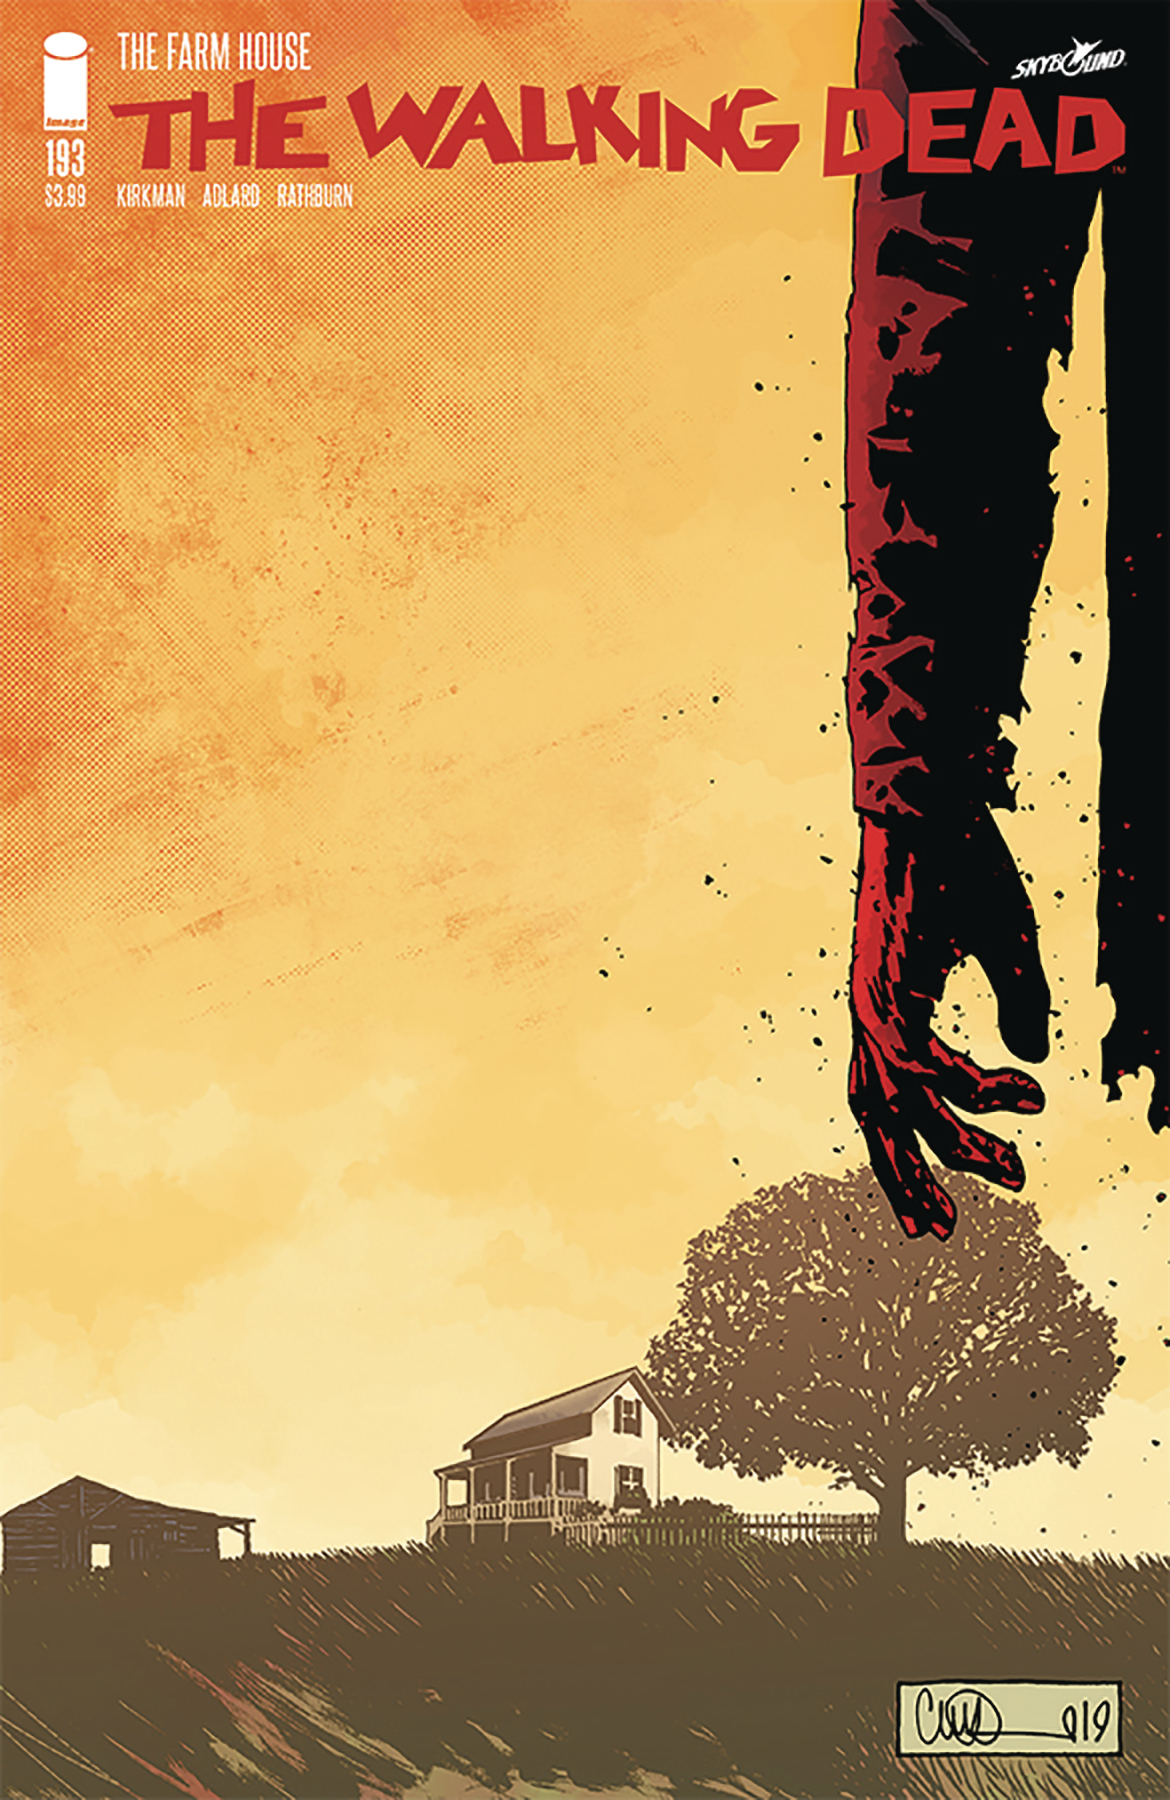 The Walking Dead #193  is out now.